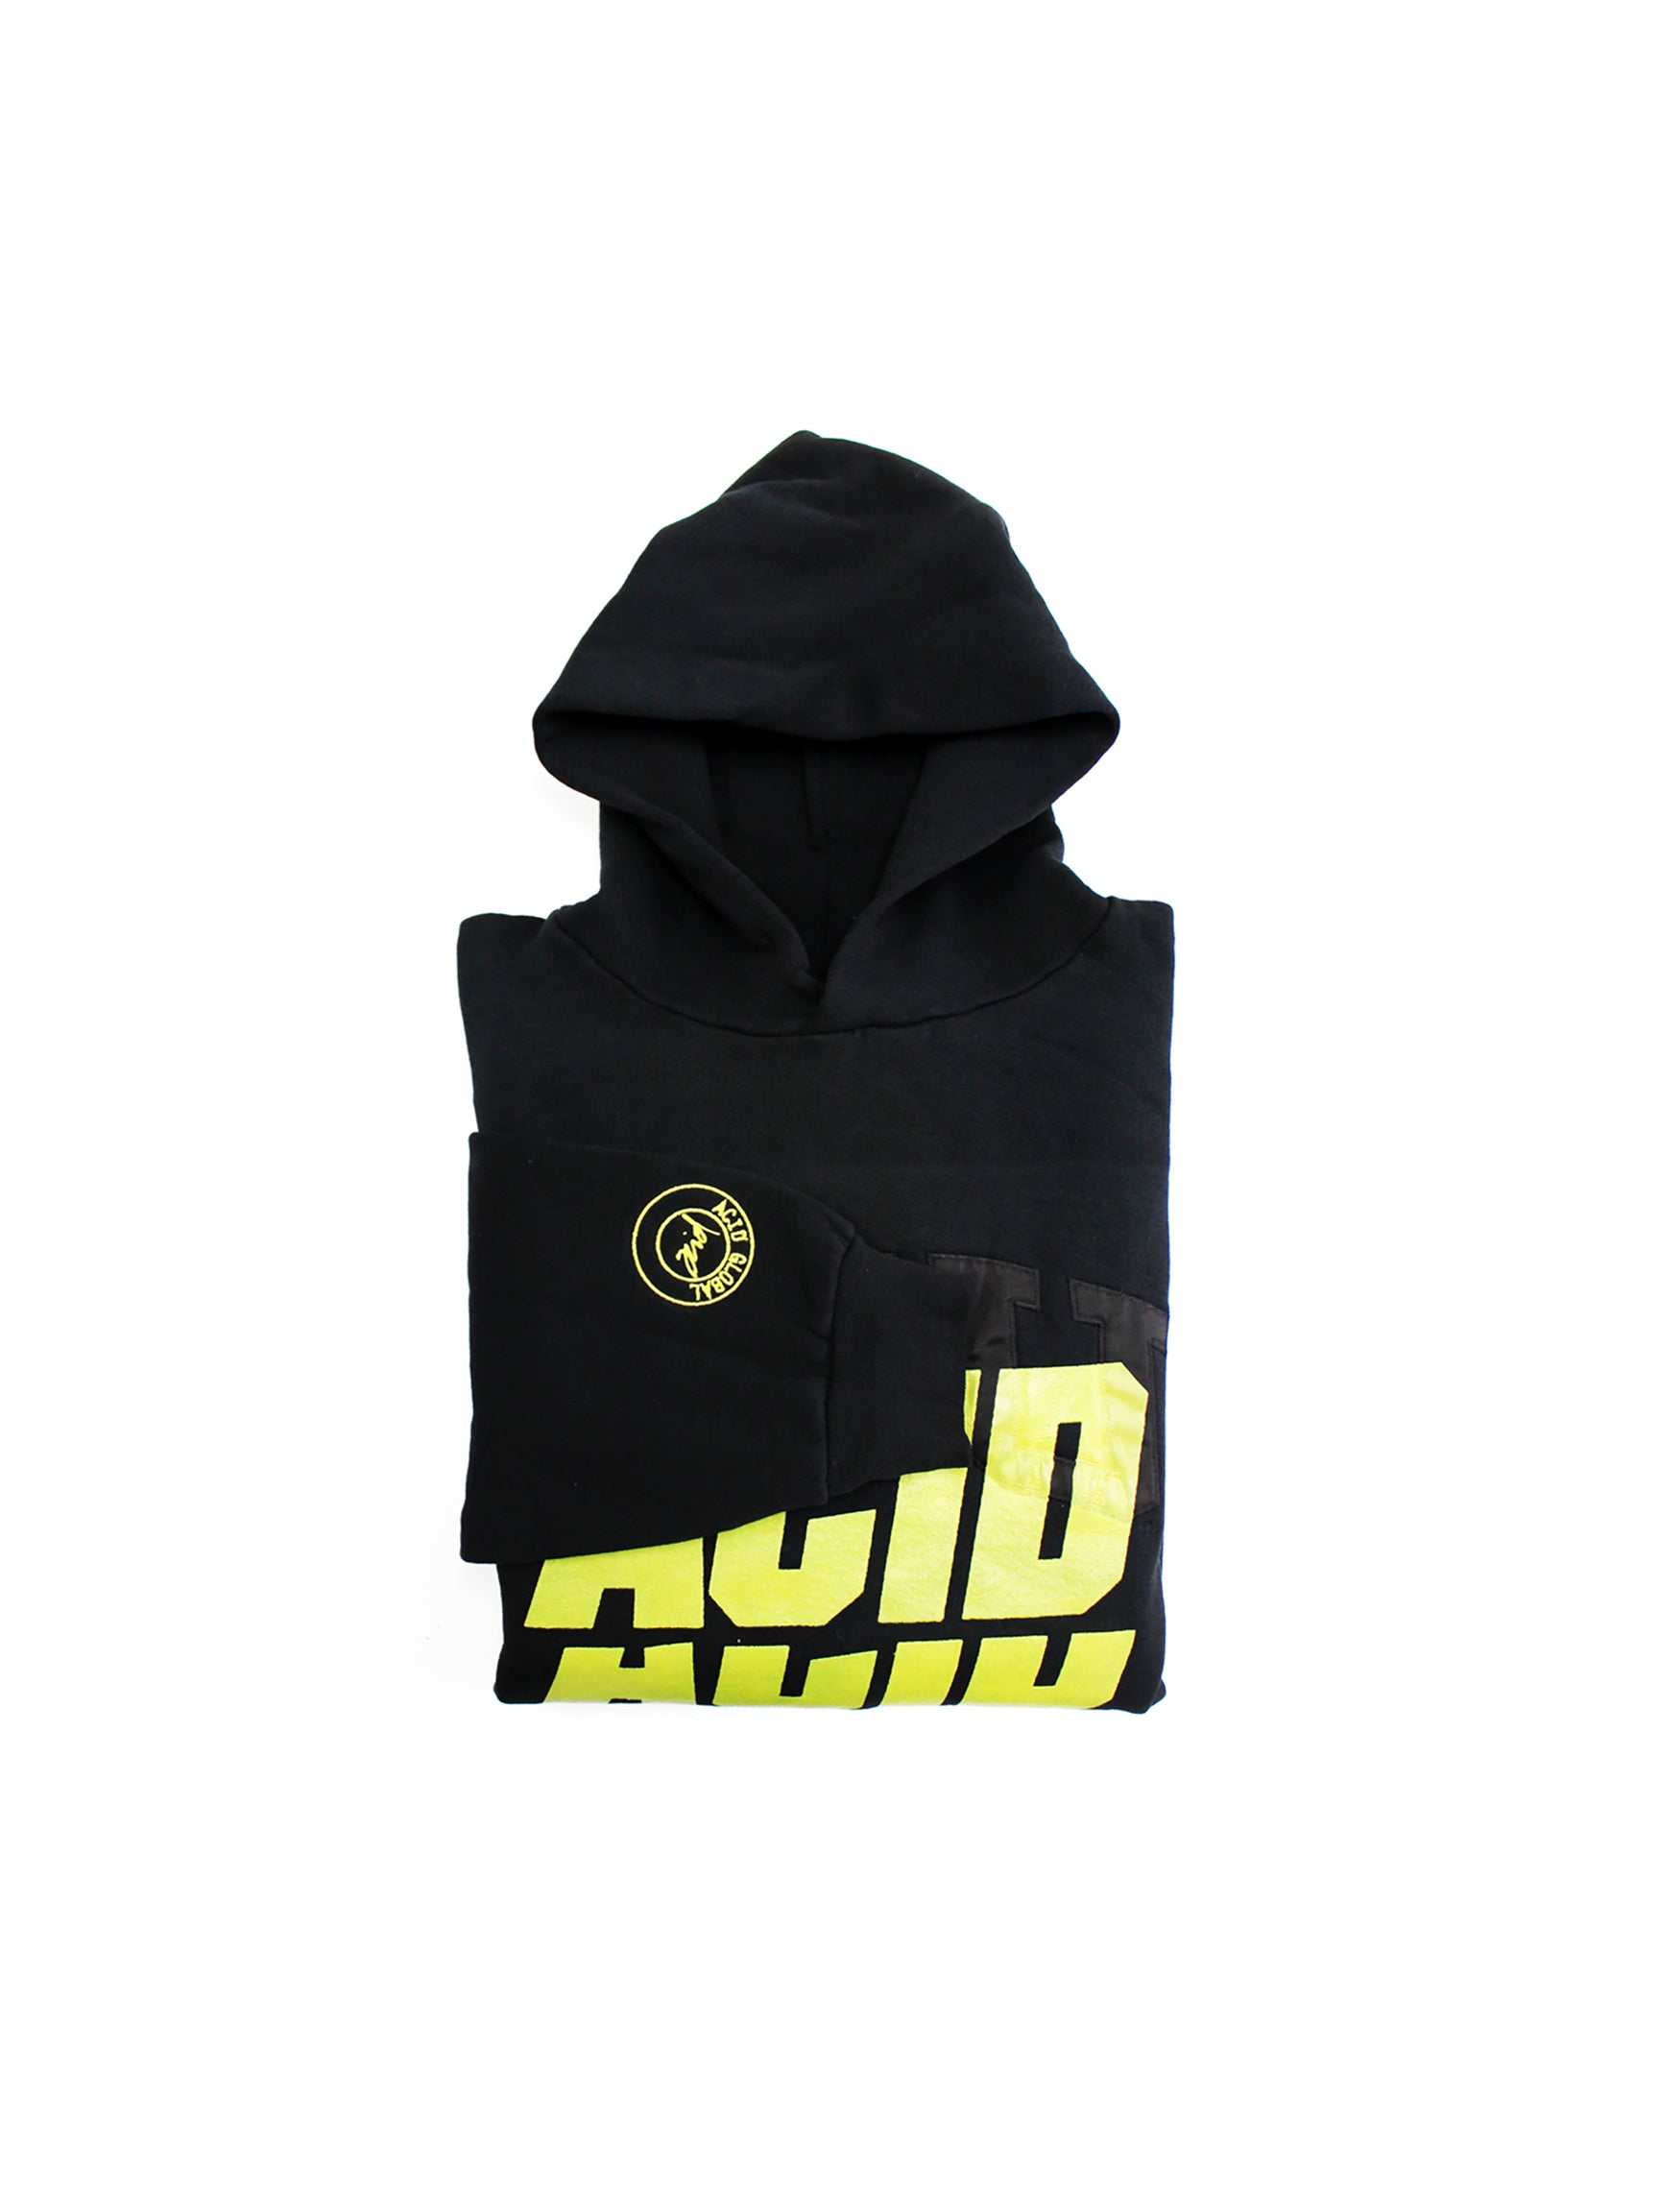 ACID 2 - BLACK OVERDYED VINTAGE HOOD - PANTONE COLOR CODE 19-4305 TPX